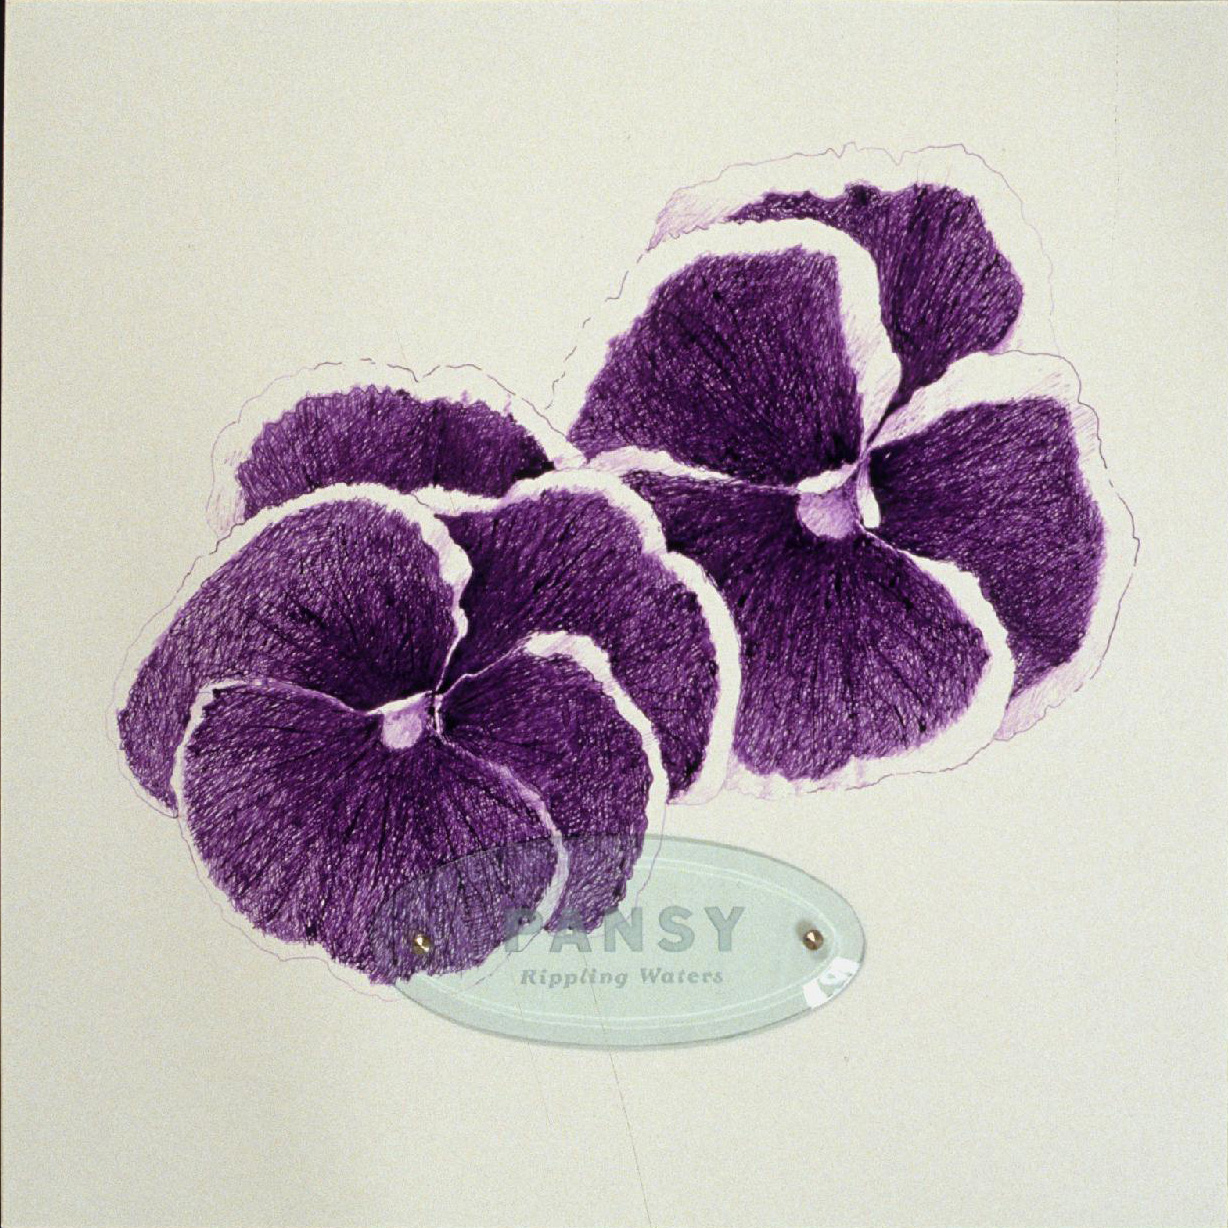 "Pansy ""Rippling Waters,"" 20"" x 20"" (50.8cm x 50.8cm), ink on paper, sandblasted glass, bolts"